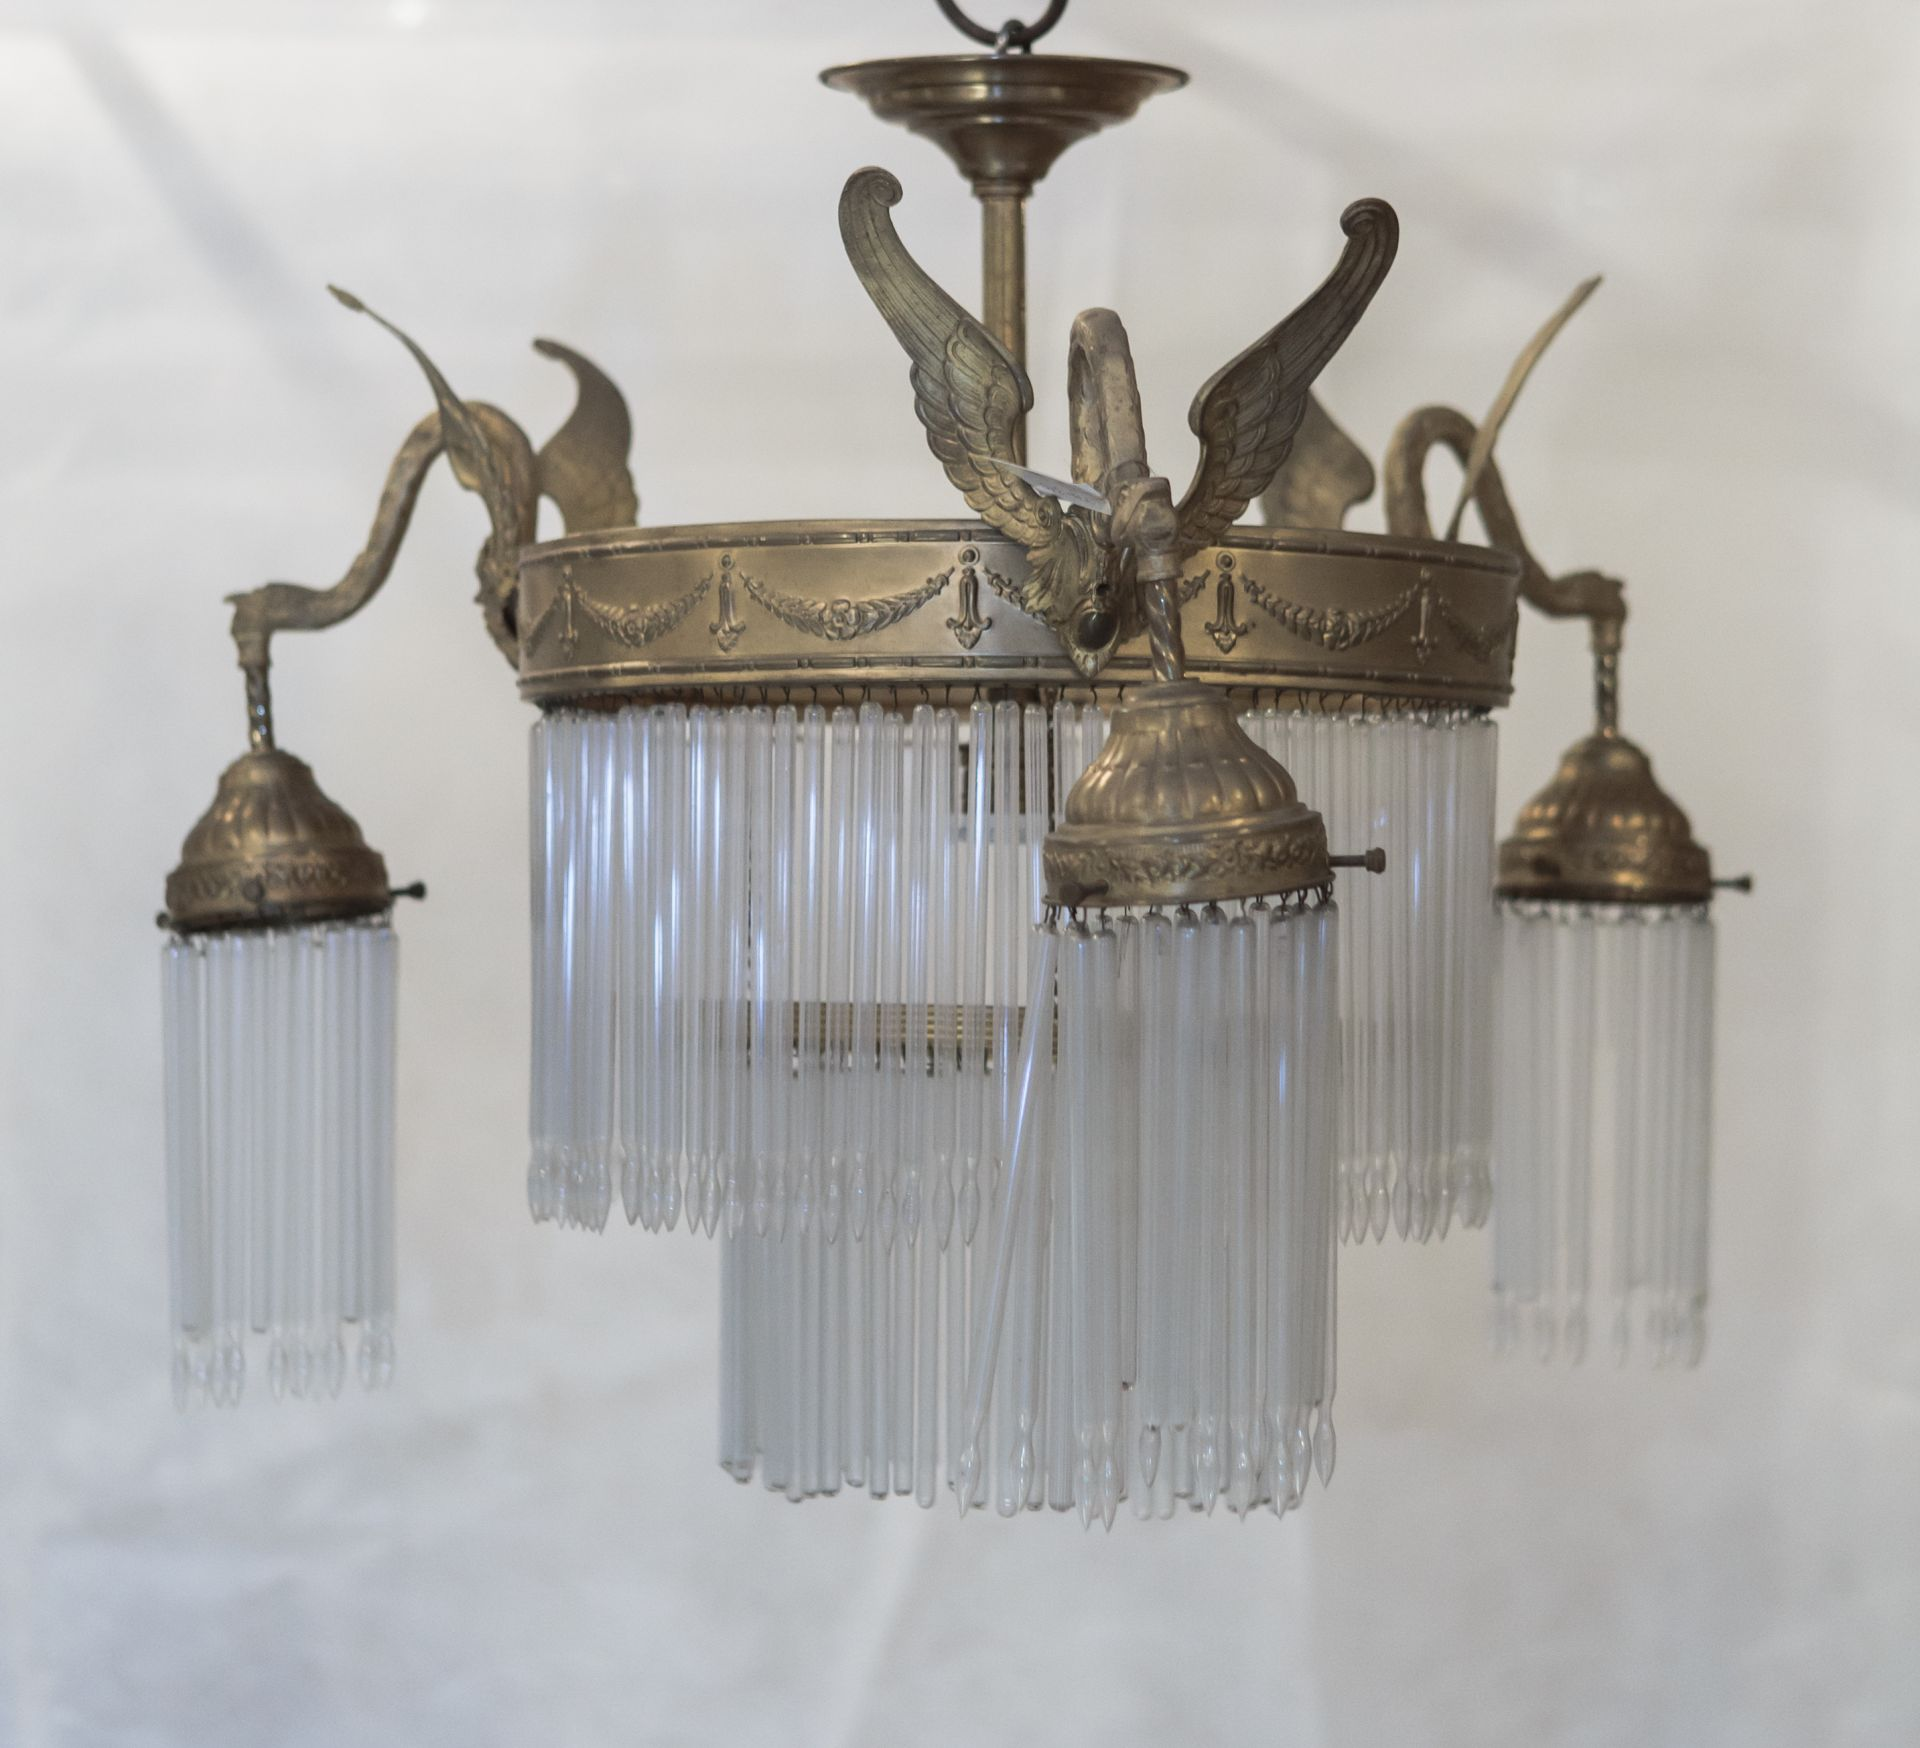 Chandelier, 1900–1911, Lithuanian National Museum of Art, TM-316. Photo by Tomas Kapočius, 2017